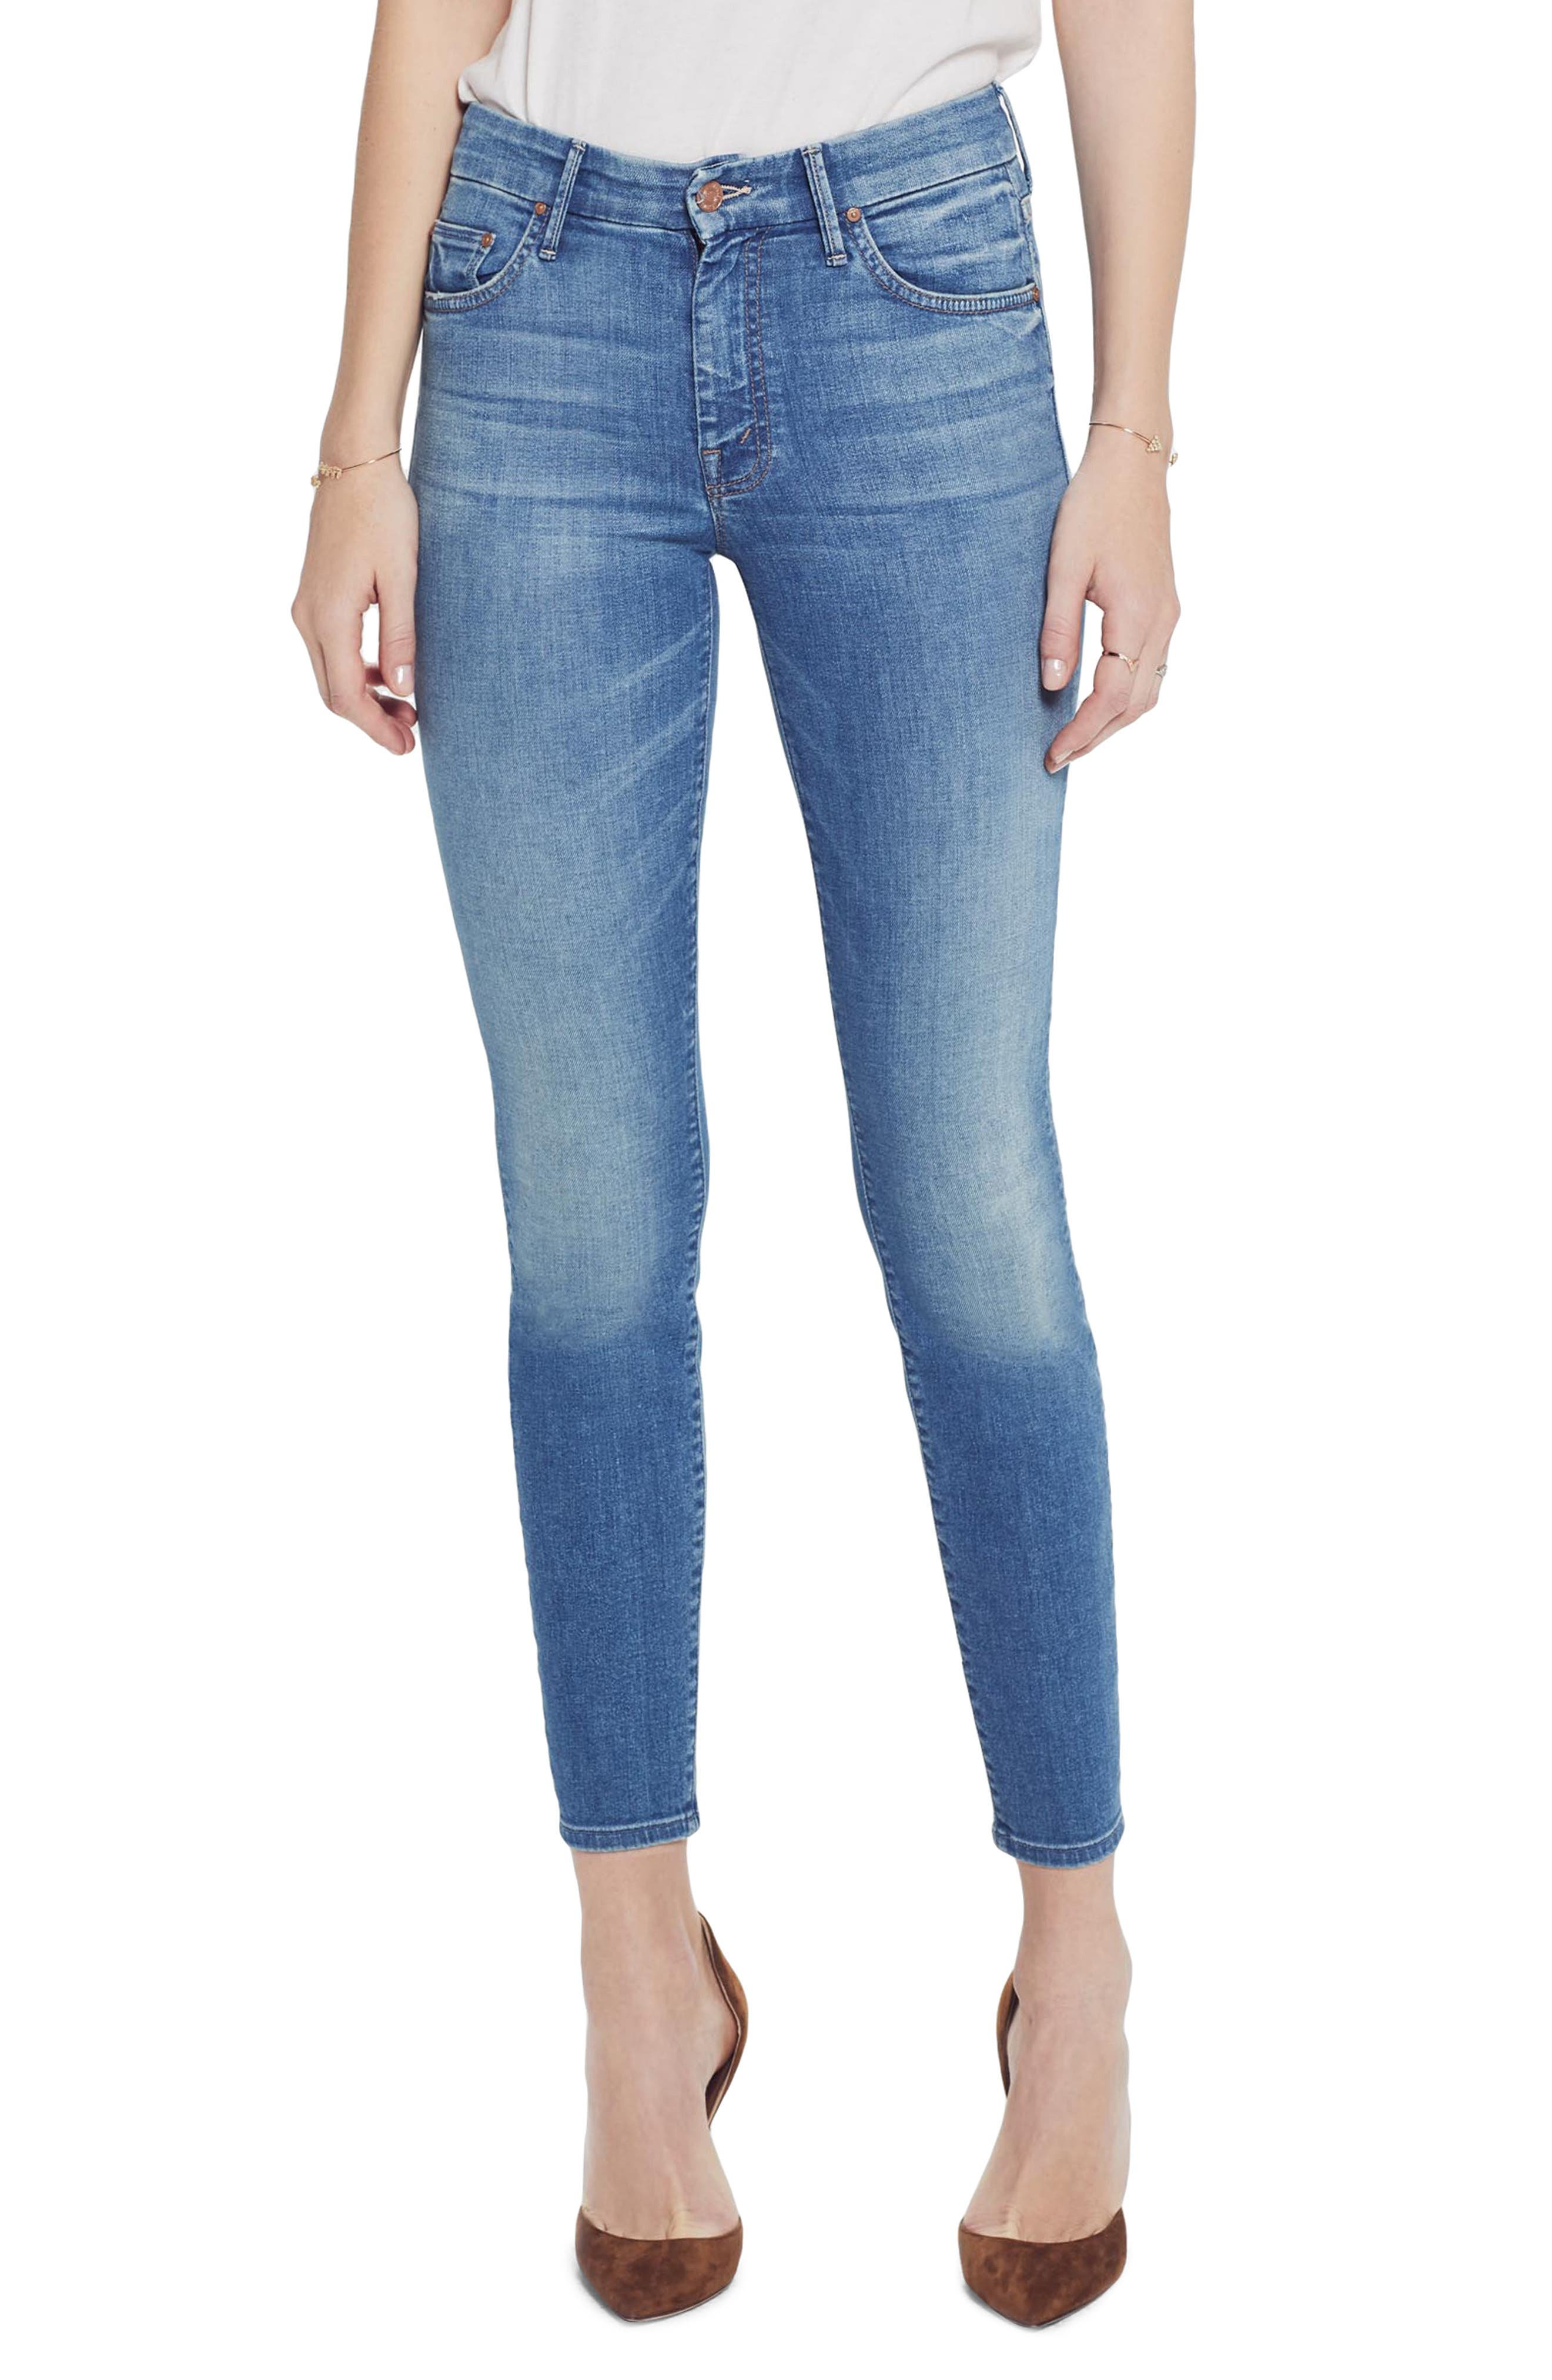 MOTHER, The Looker Crop Skinny Jeans, Main thumbnail 1, color, WISHFUL DRINKING